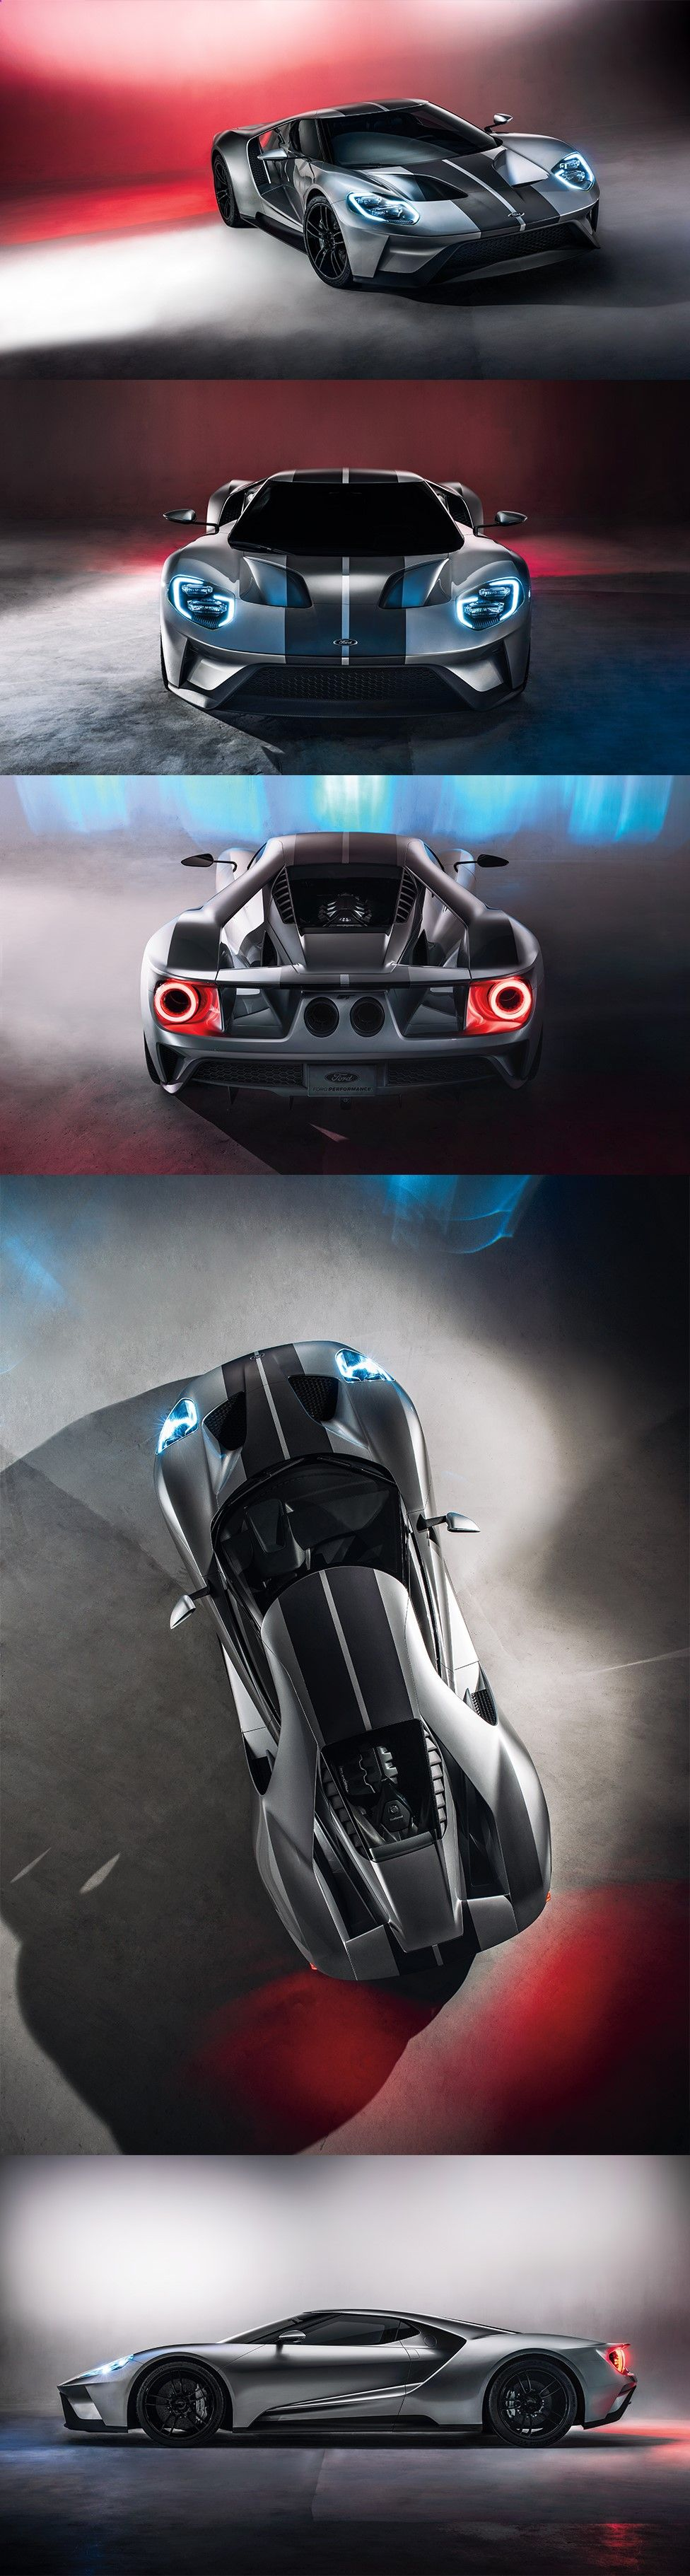 Design Of The Year Ford Gt A Monument Of Style Inside And